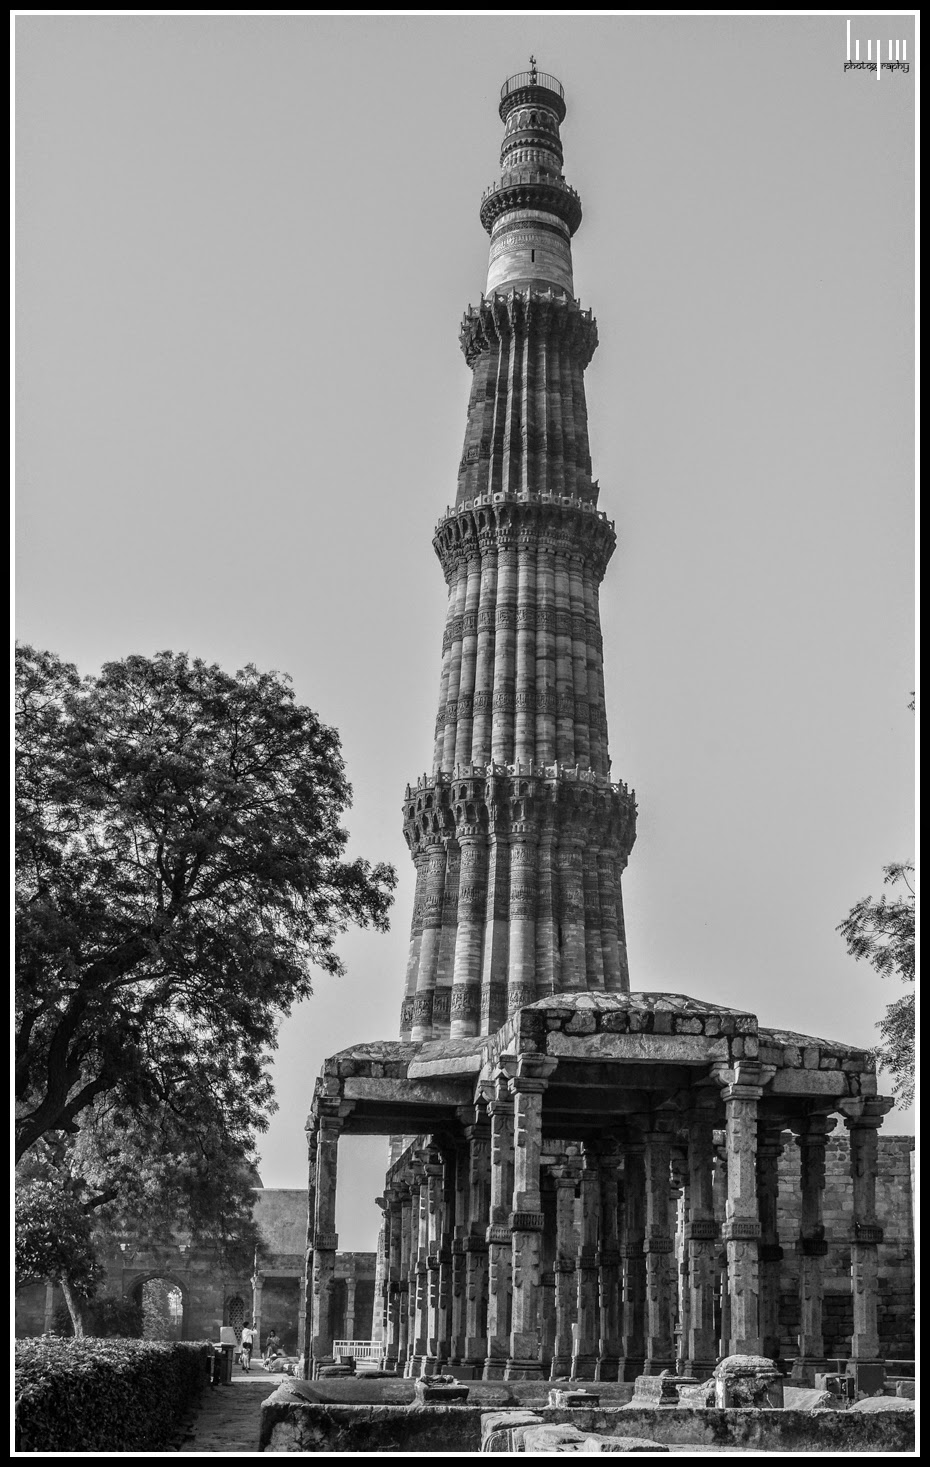 The real reason behind the establishment of the qutub minar may be known only to its creator however the theory to it is that it was created to proclaim